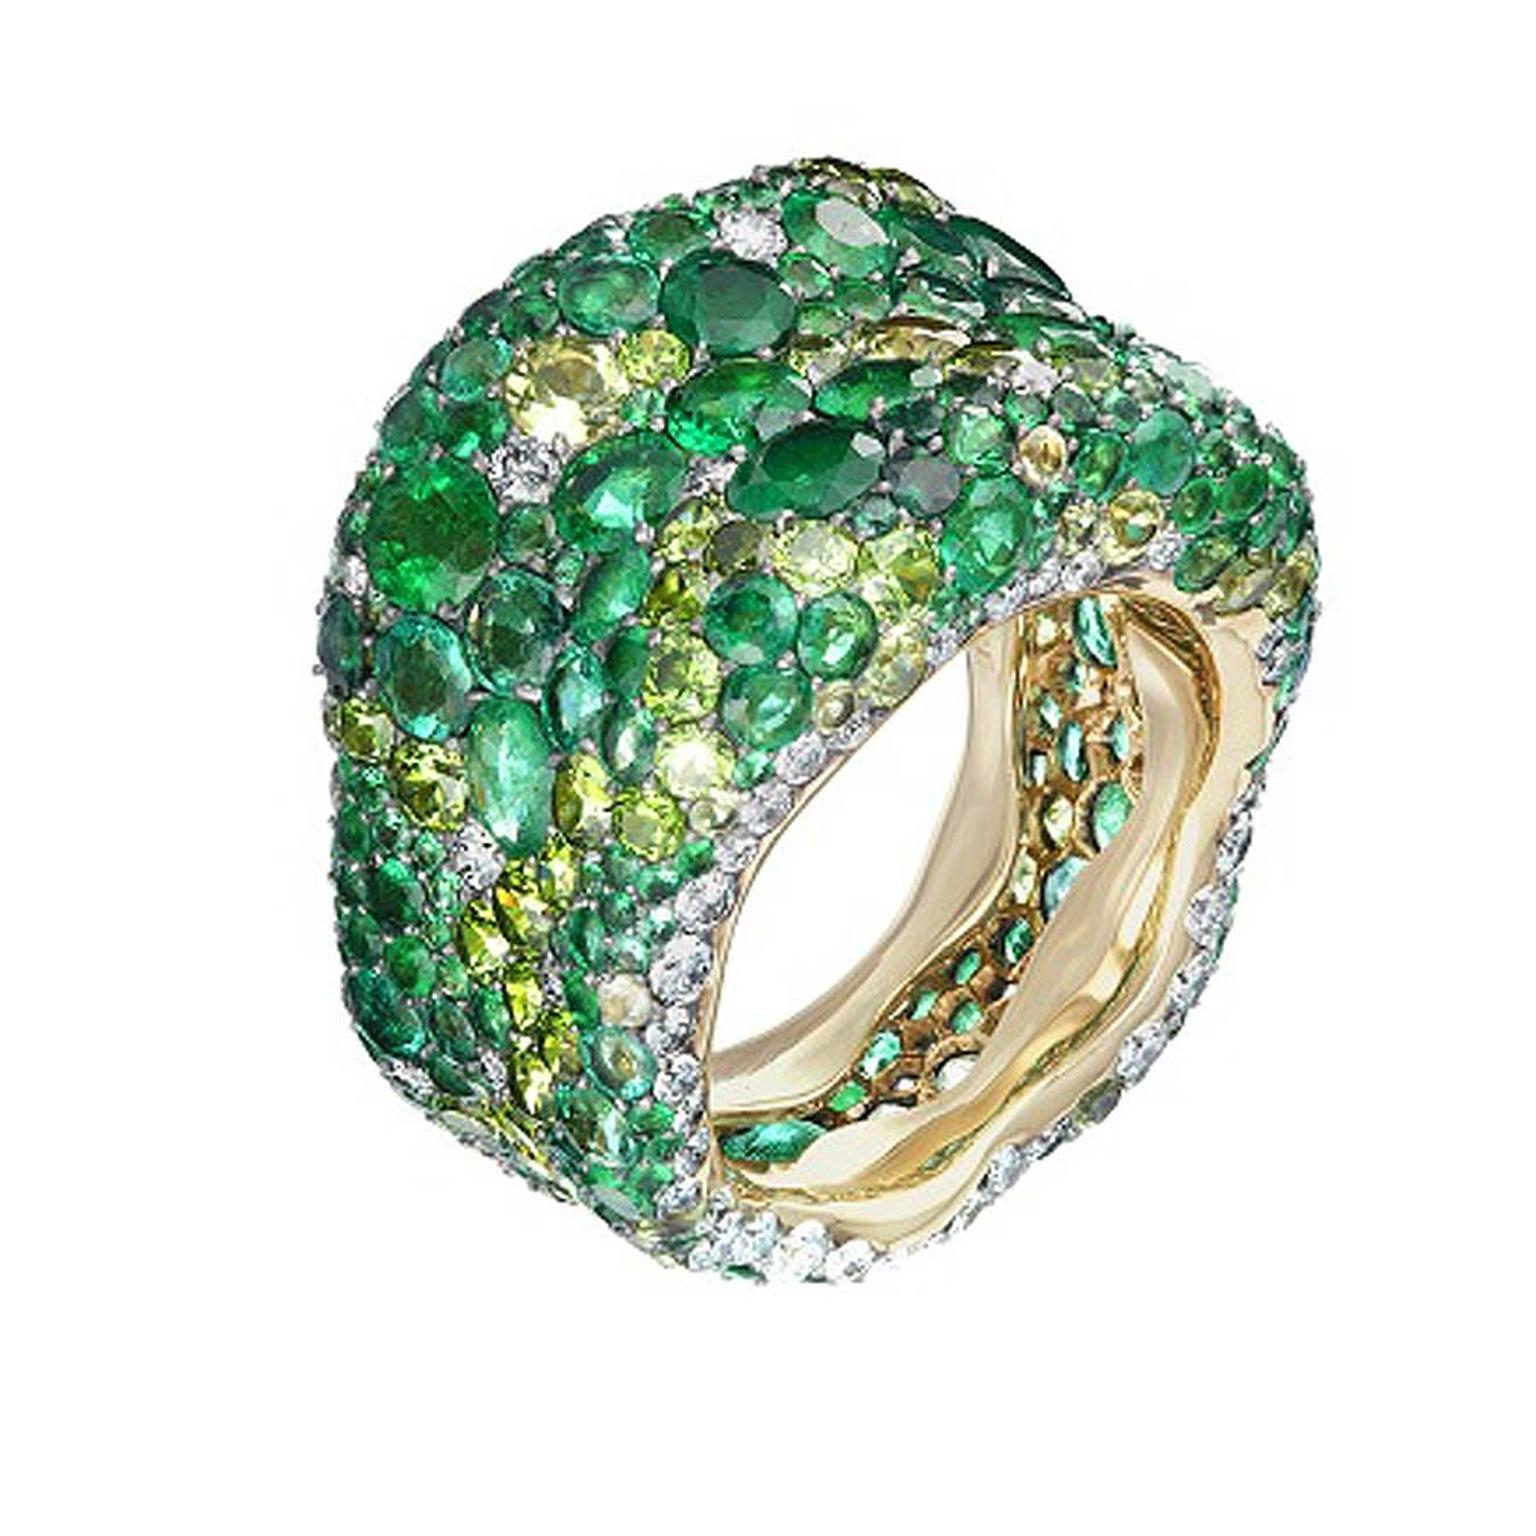 FabergeEmotionrings001